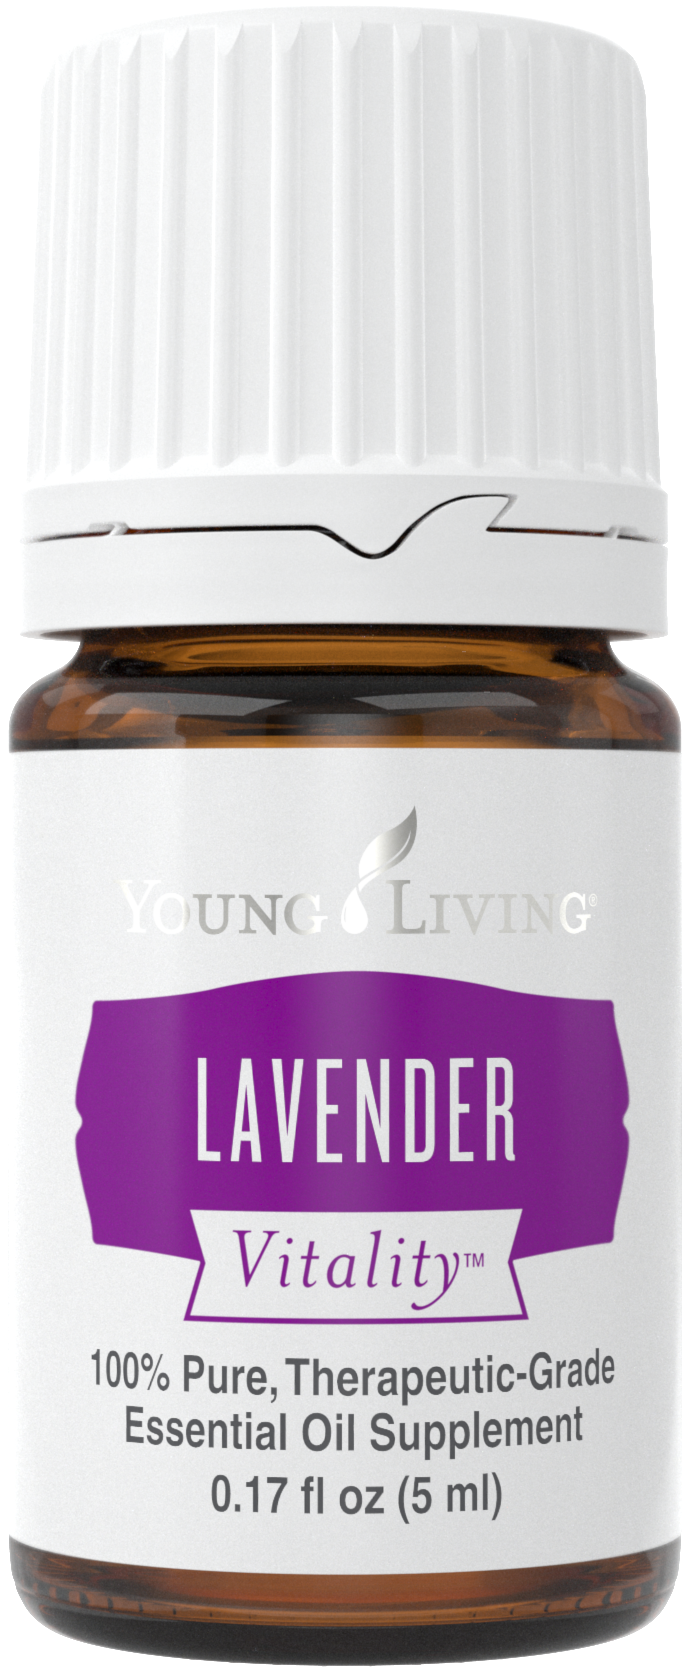 lavender_5ml_suplement_silo_2016_24106825180_o